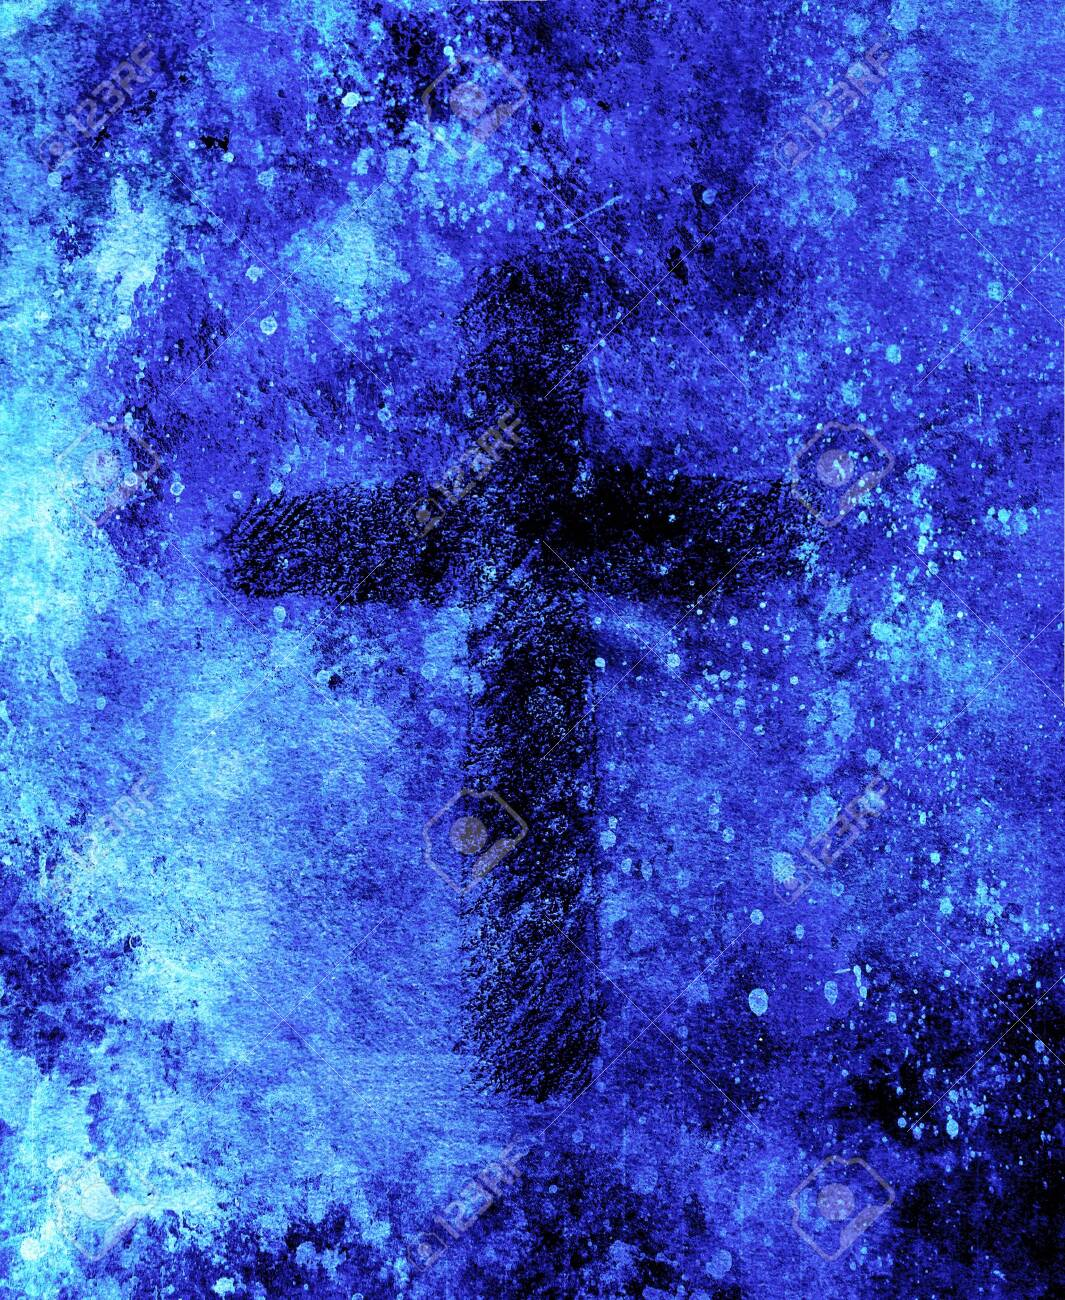 Simple Cross Symbol Pencil Drawing On Abstract Background Stock Photo Picture And Royalty Free Image Image 121475596